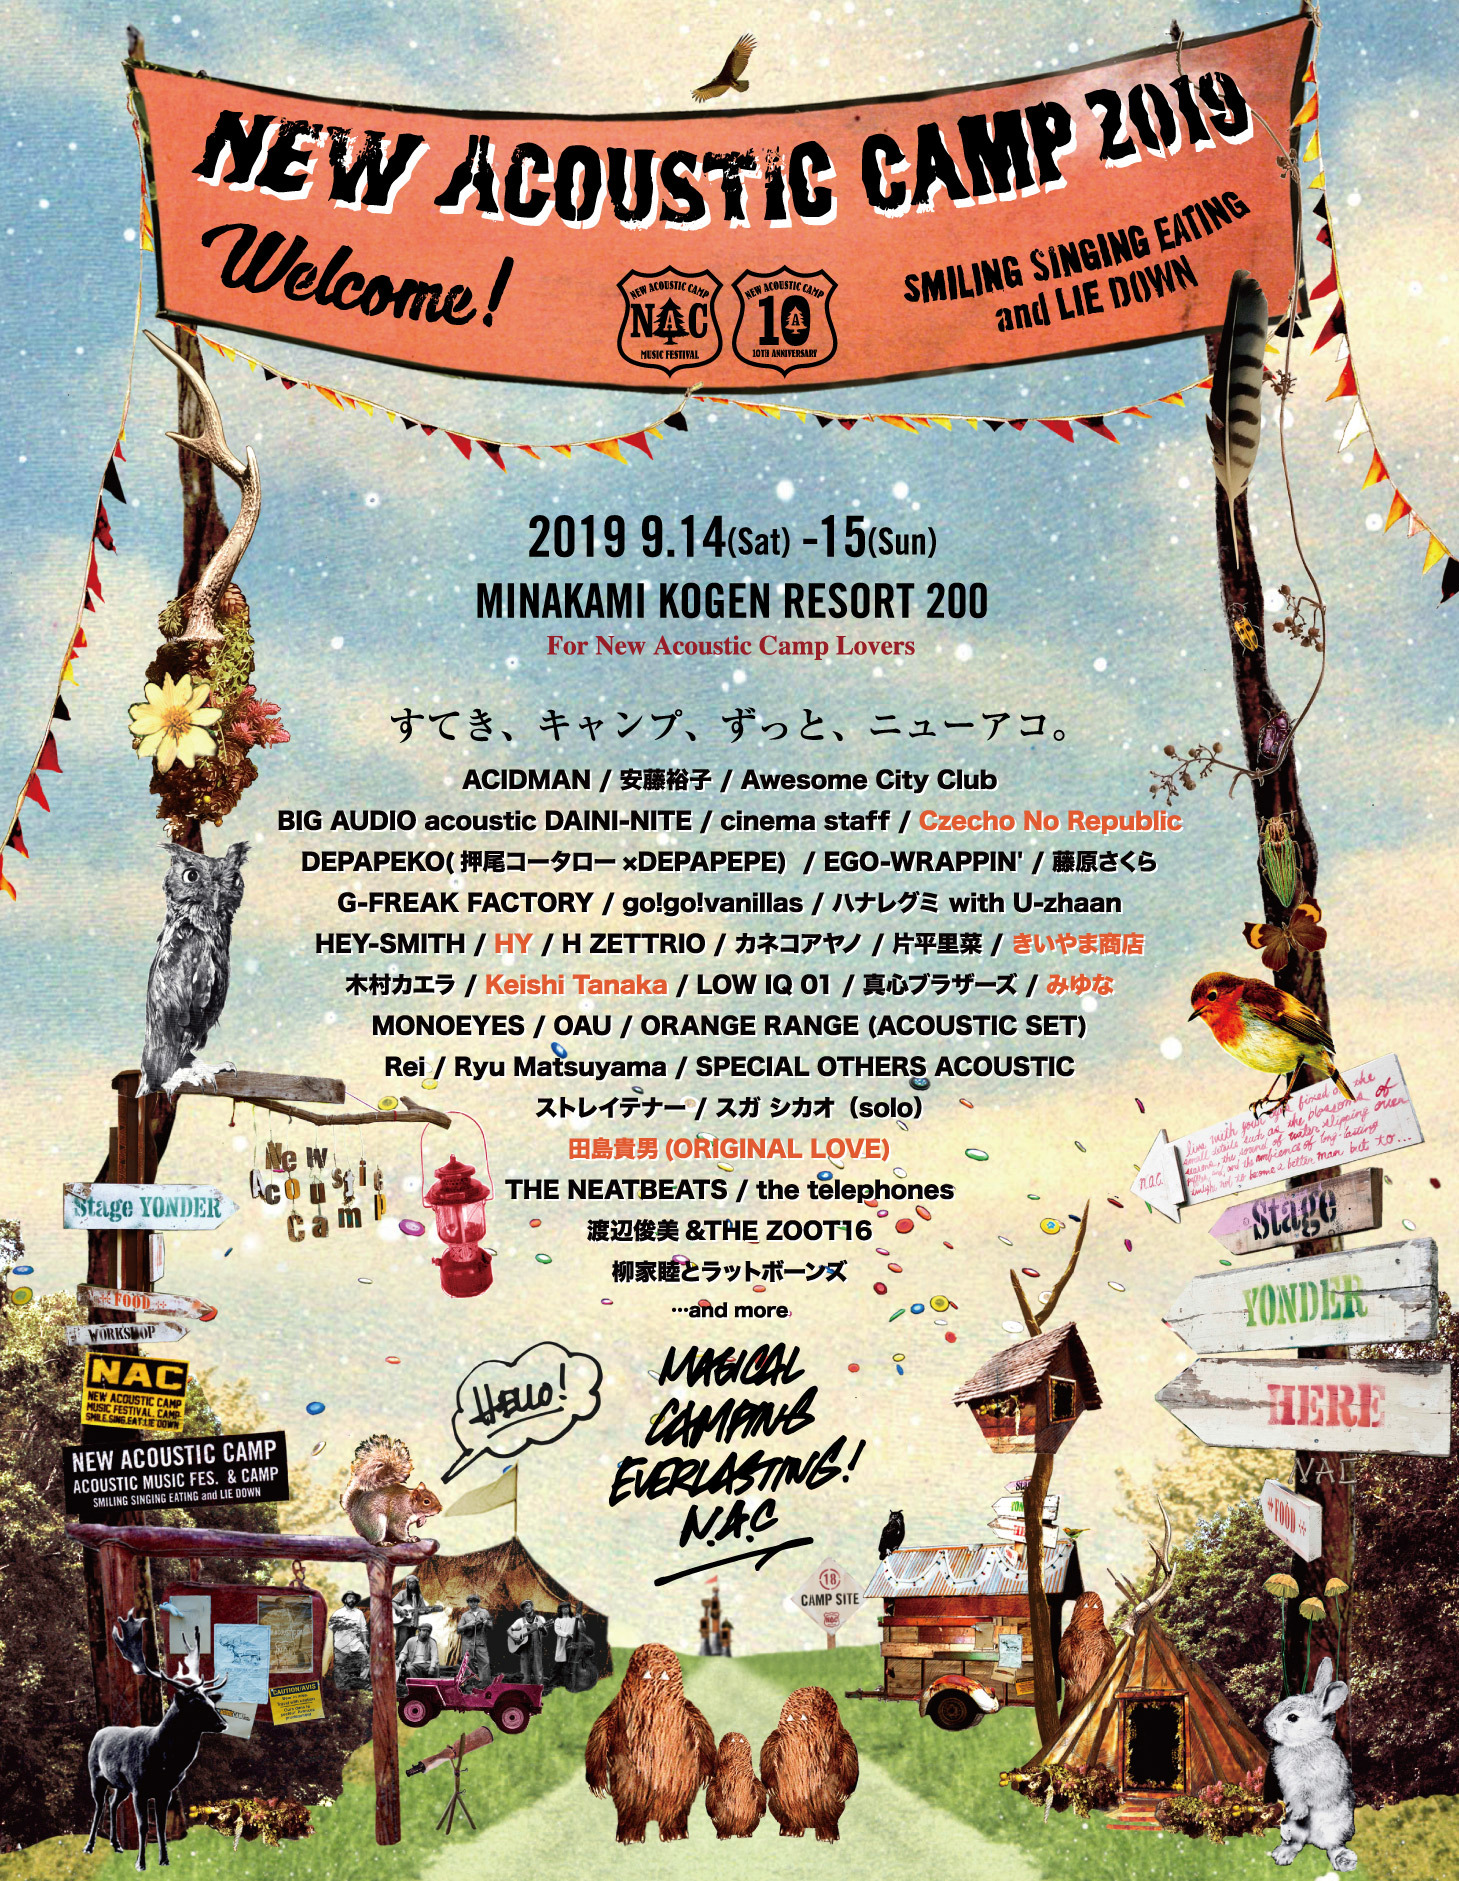 『New Acoustic Camp 2019』